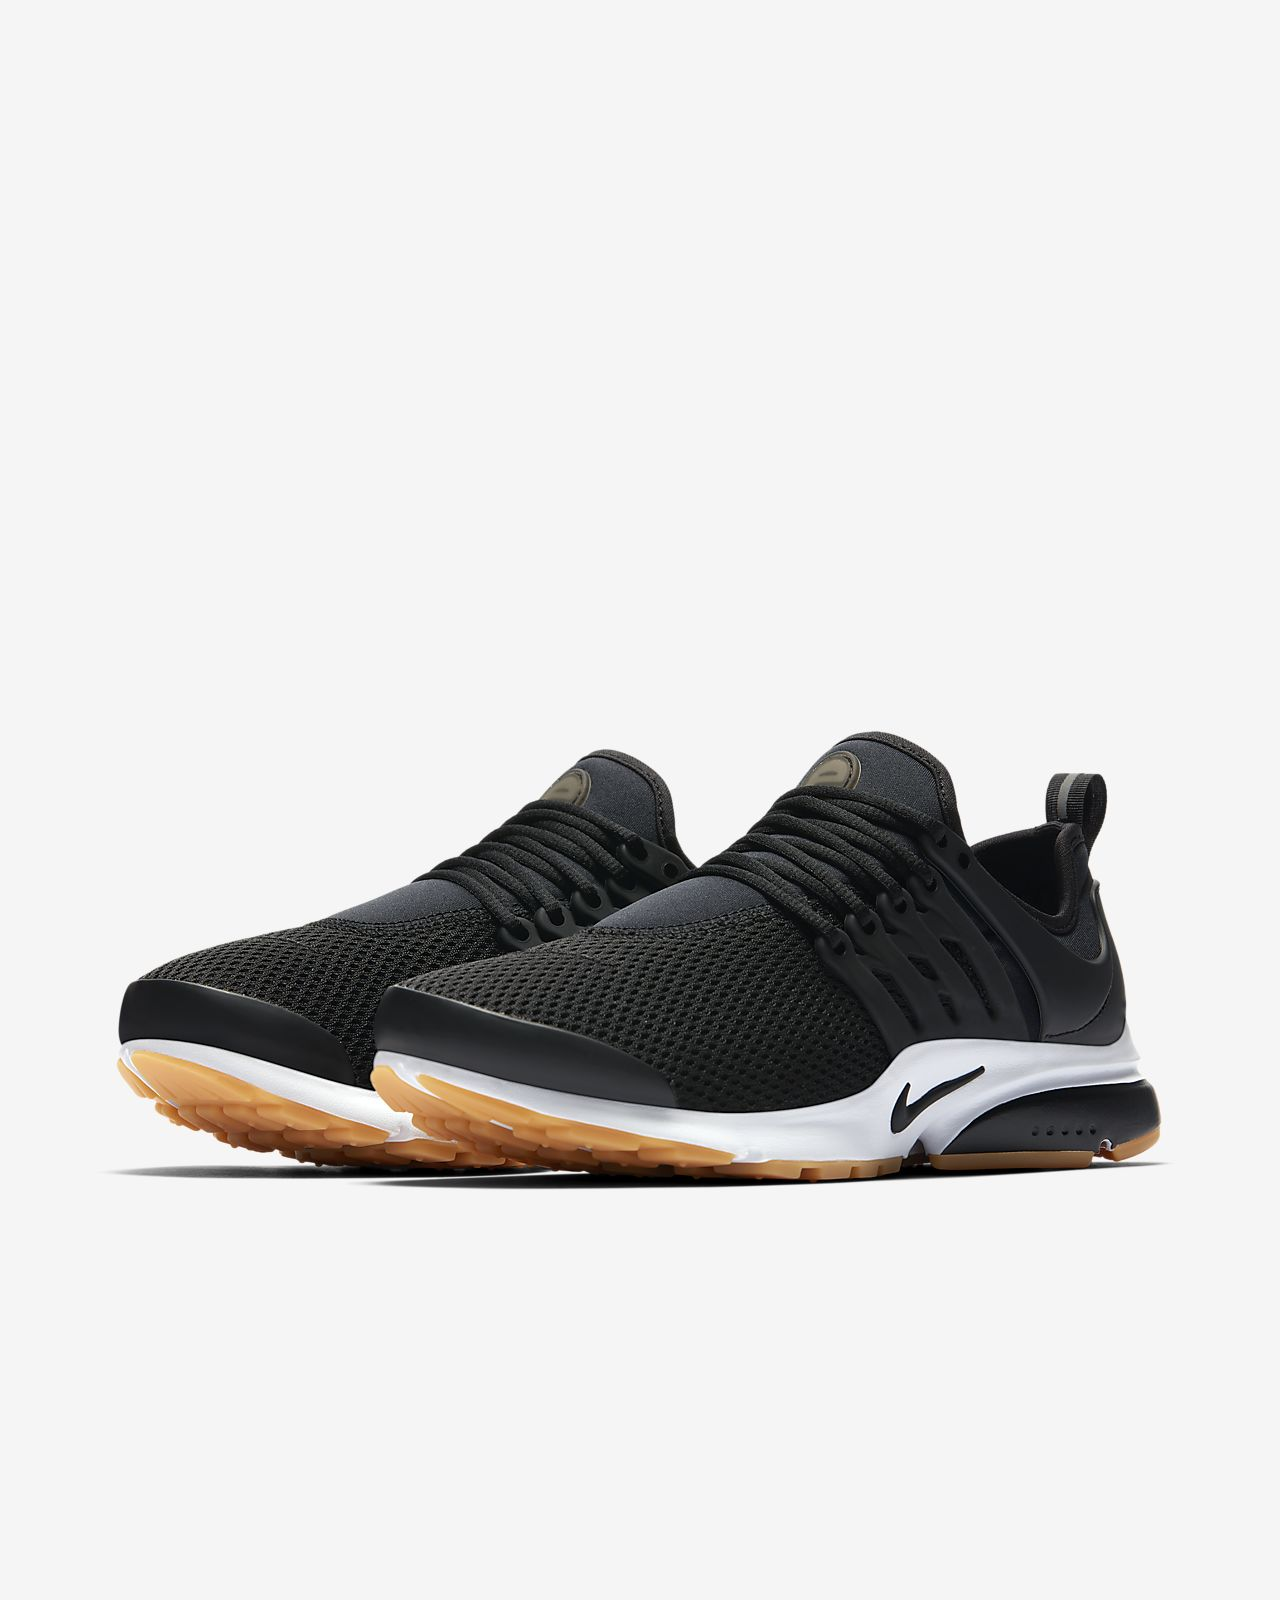 watch f50dd 3d2c7 ... Nike Air Presto Women s Shoe